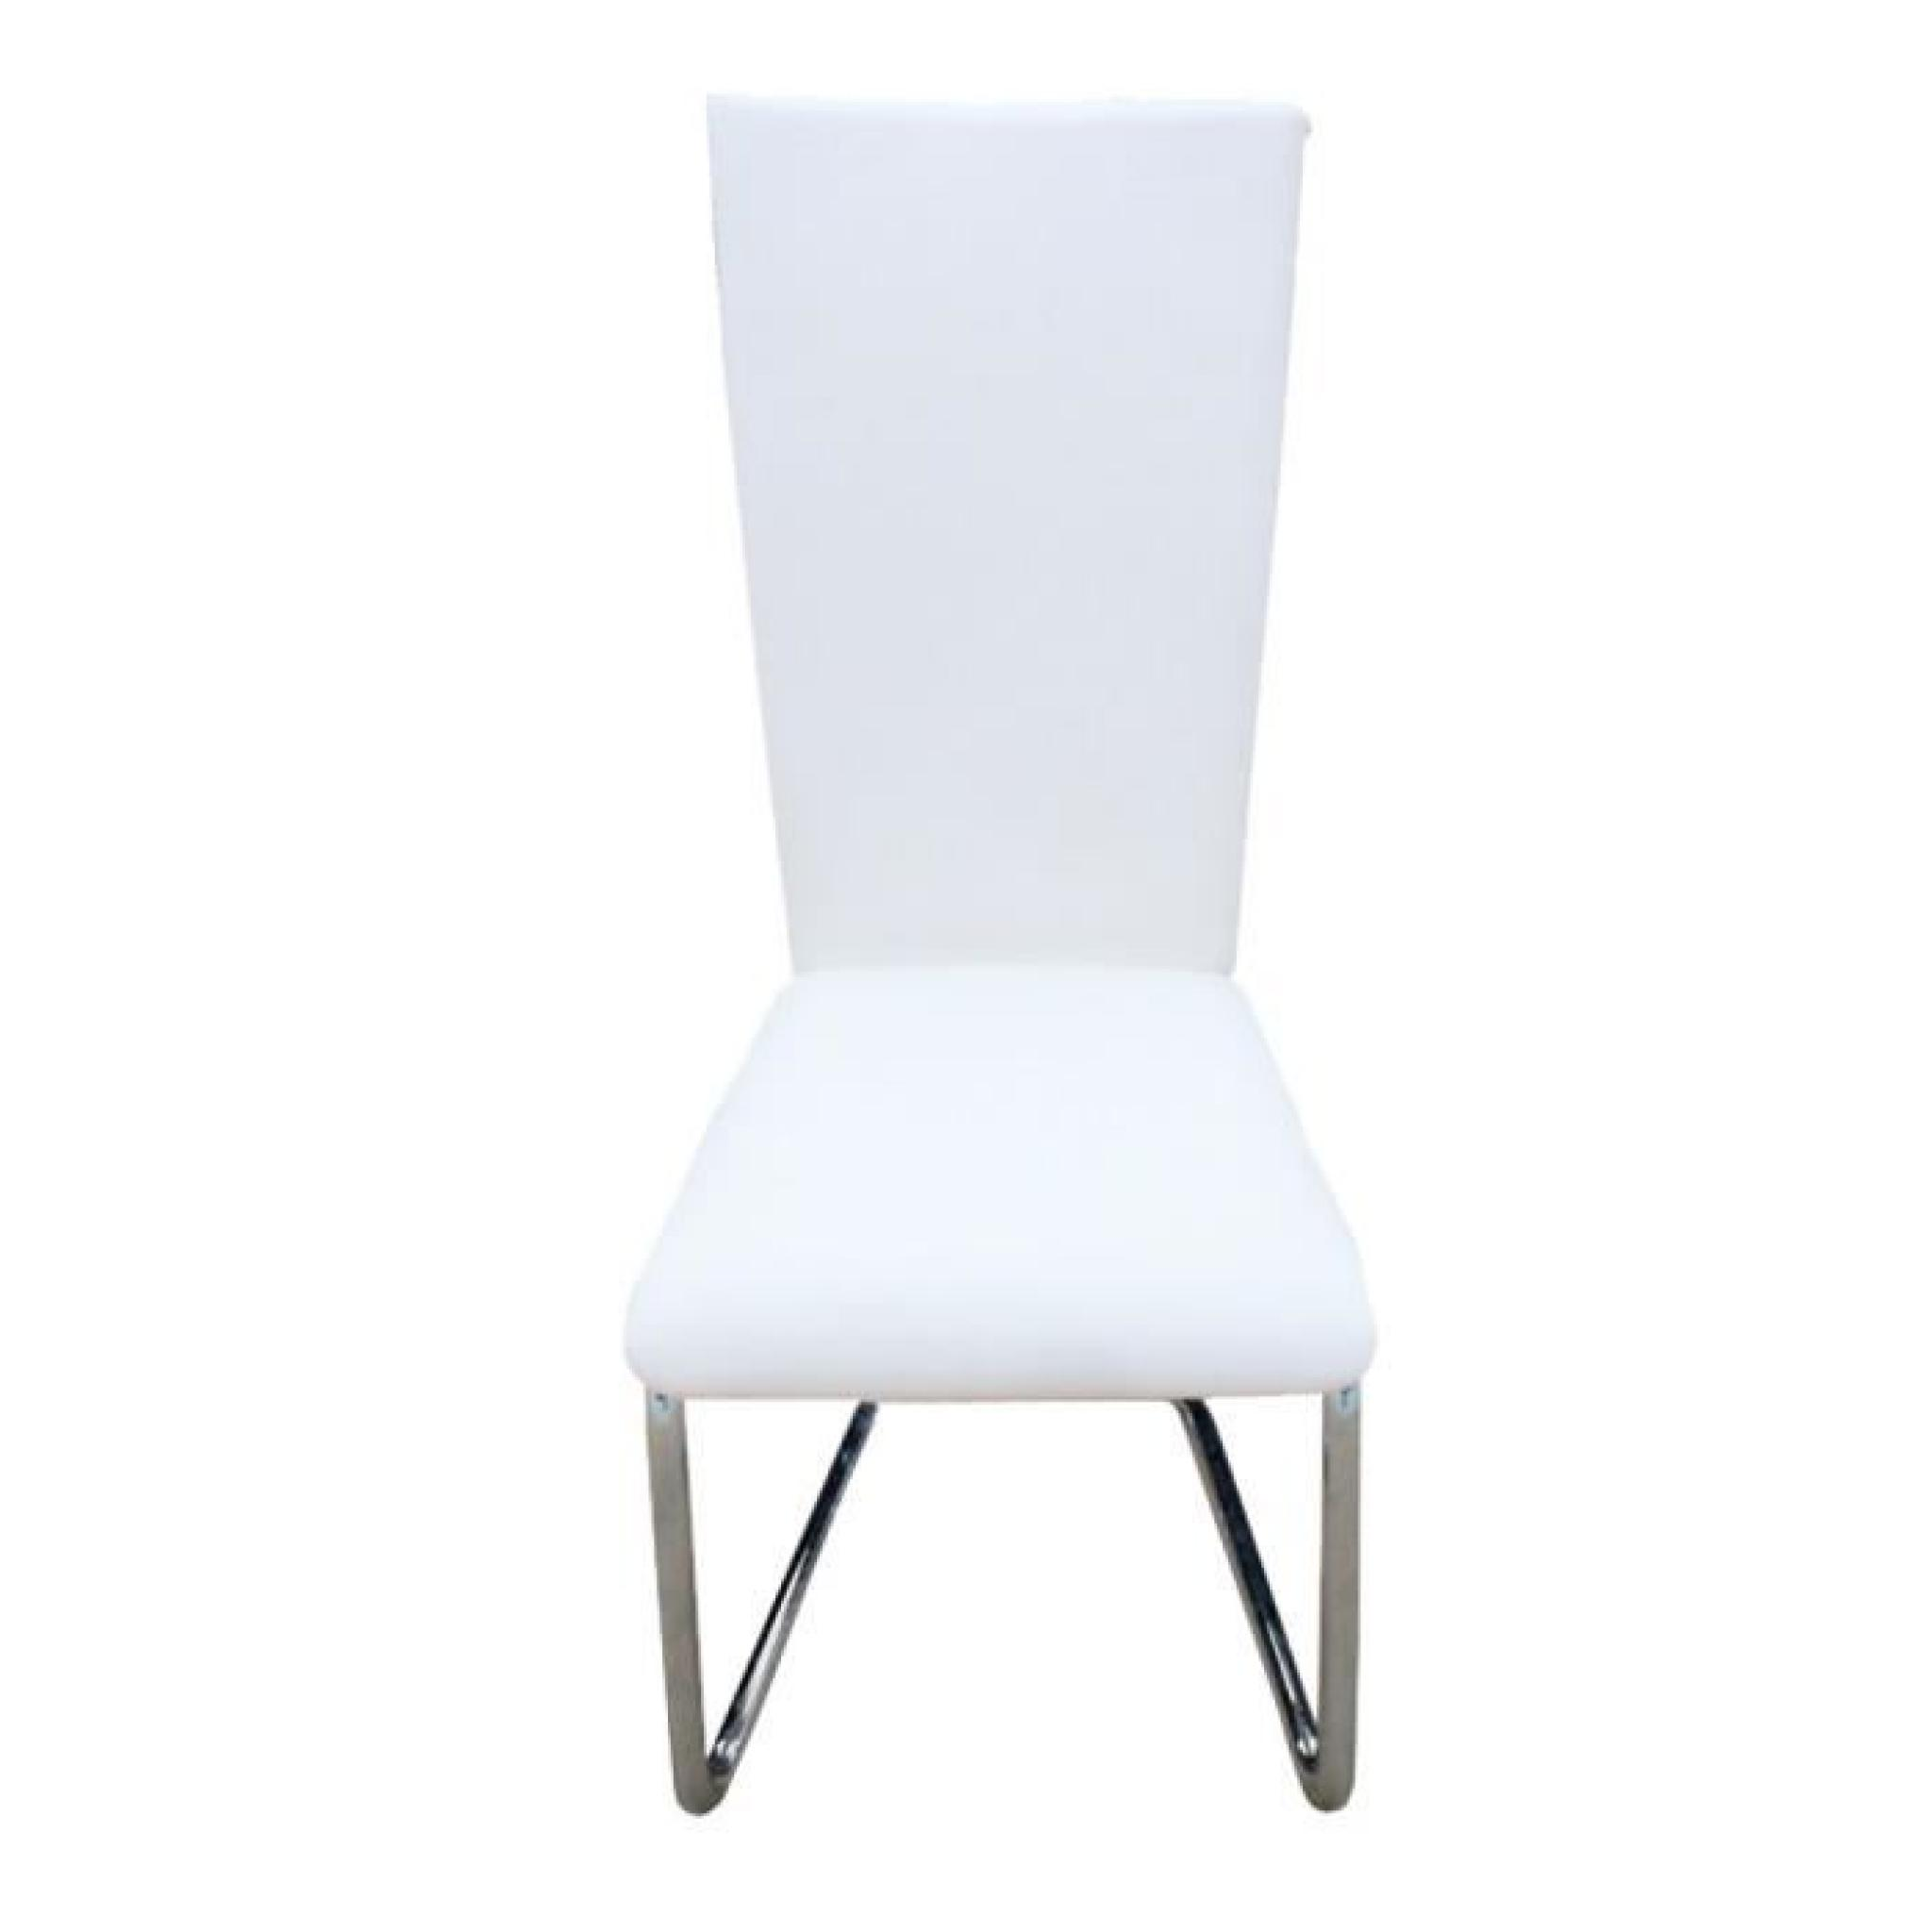 Chaises Blanches Design 2 Chaises Ultra Design Blanches Achat Vente Chaise Salle